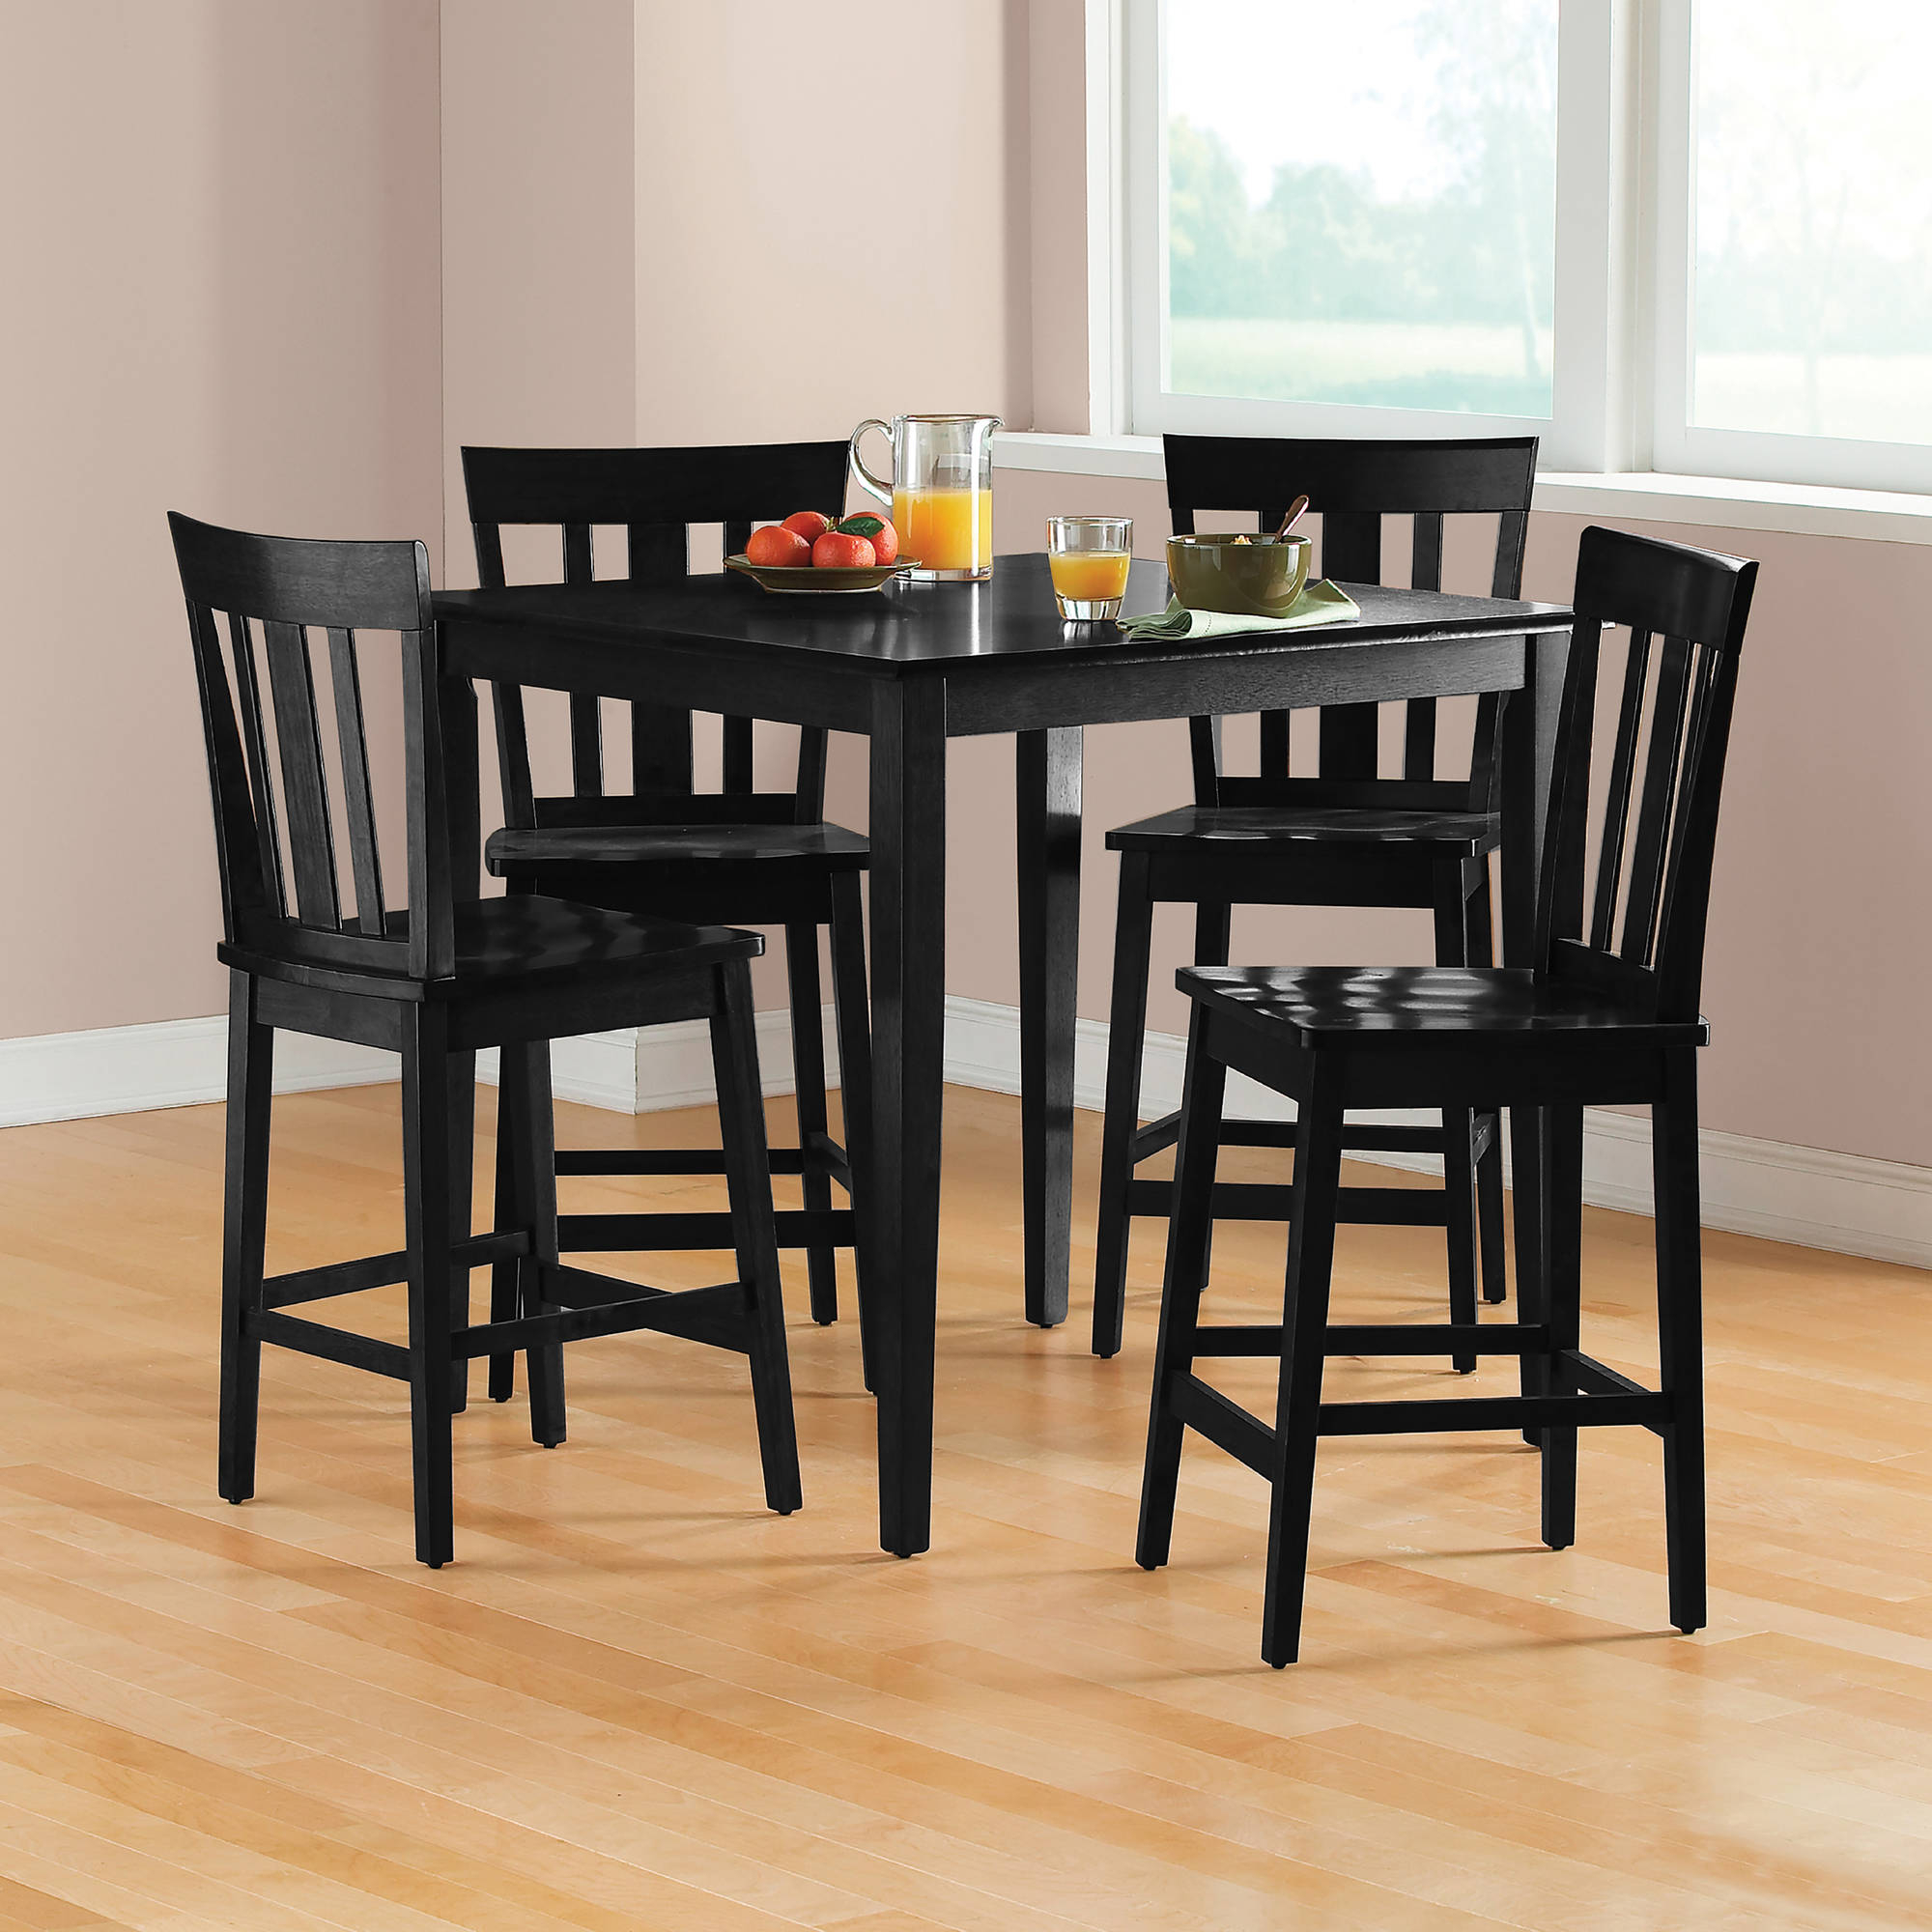 Target Marketing Systems 3 Piece Breakfast Nook Dining Set – Walmart Inside 2019 Crownover 3 Piece Bar Table Sets (View 21 of 25)